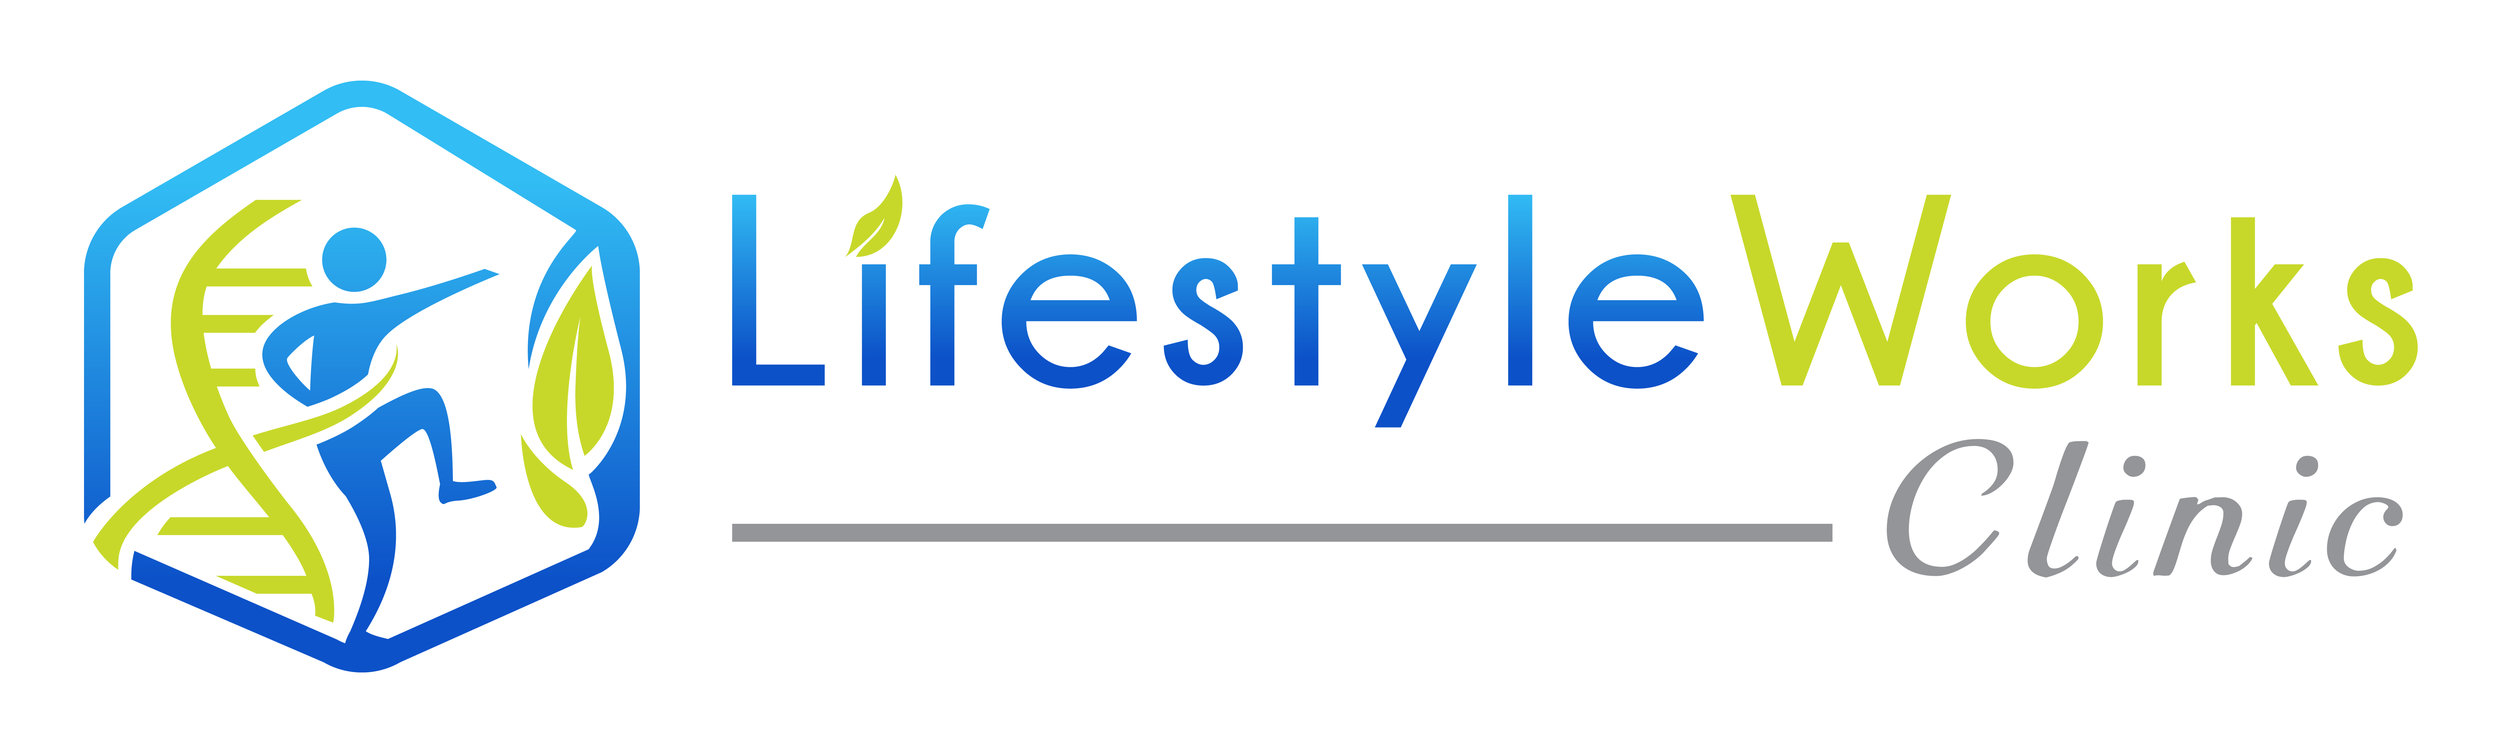 Lifestyle Works Clinic logo (Street sign) with full colors on white background.jpg